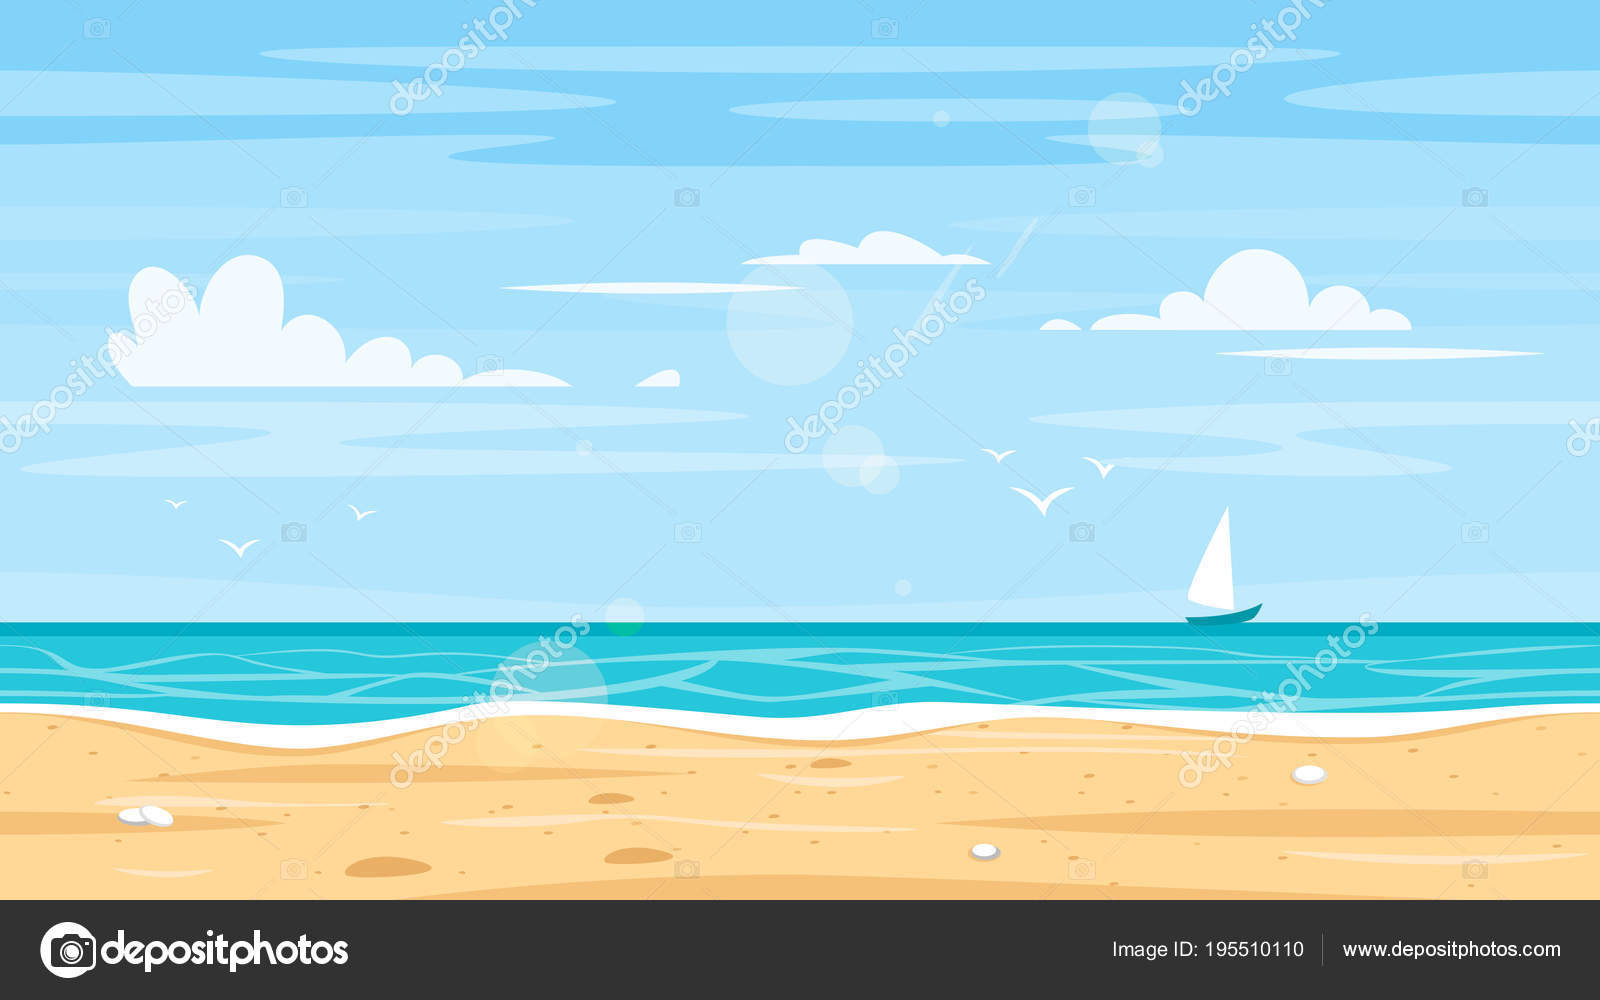 baf5194c2736c Seamless landscape with sea shore — Stock Vector © tkronalter9.gmail ...